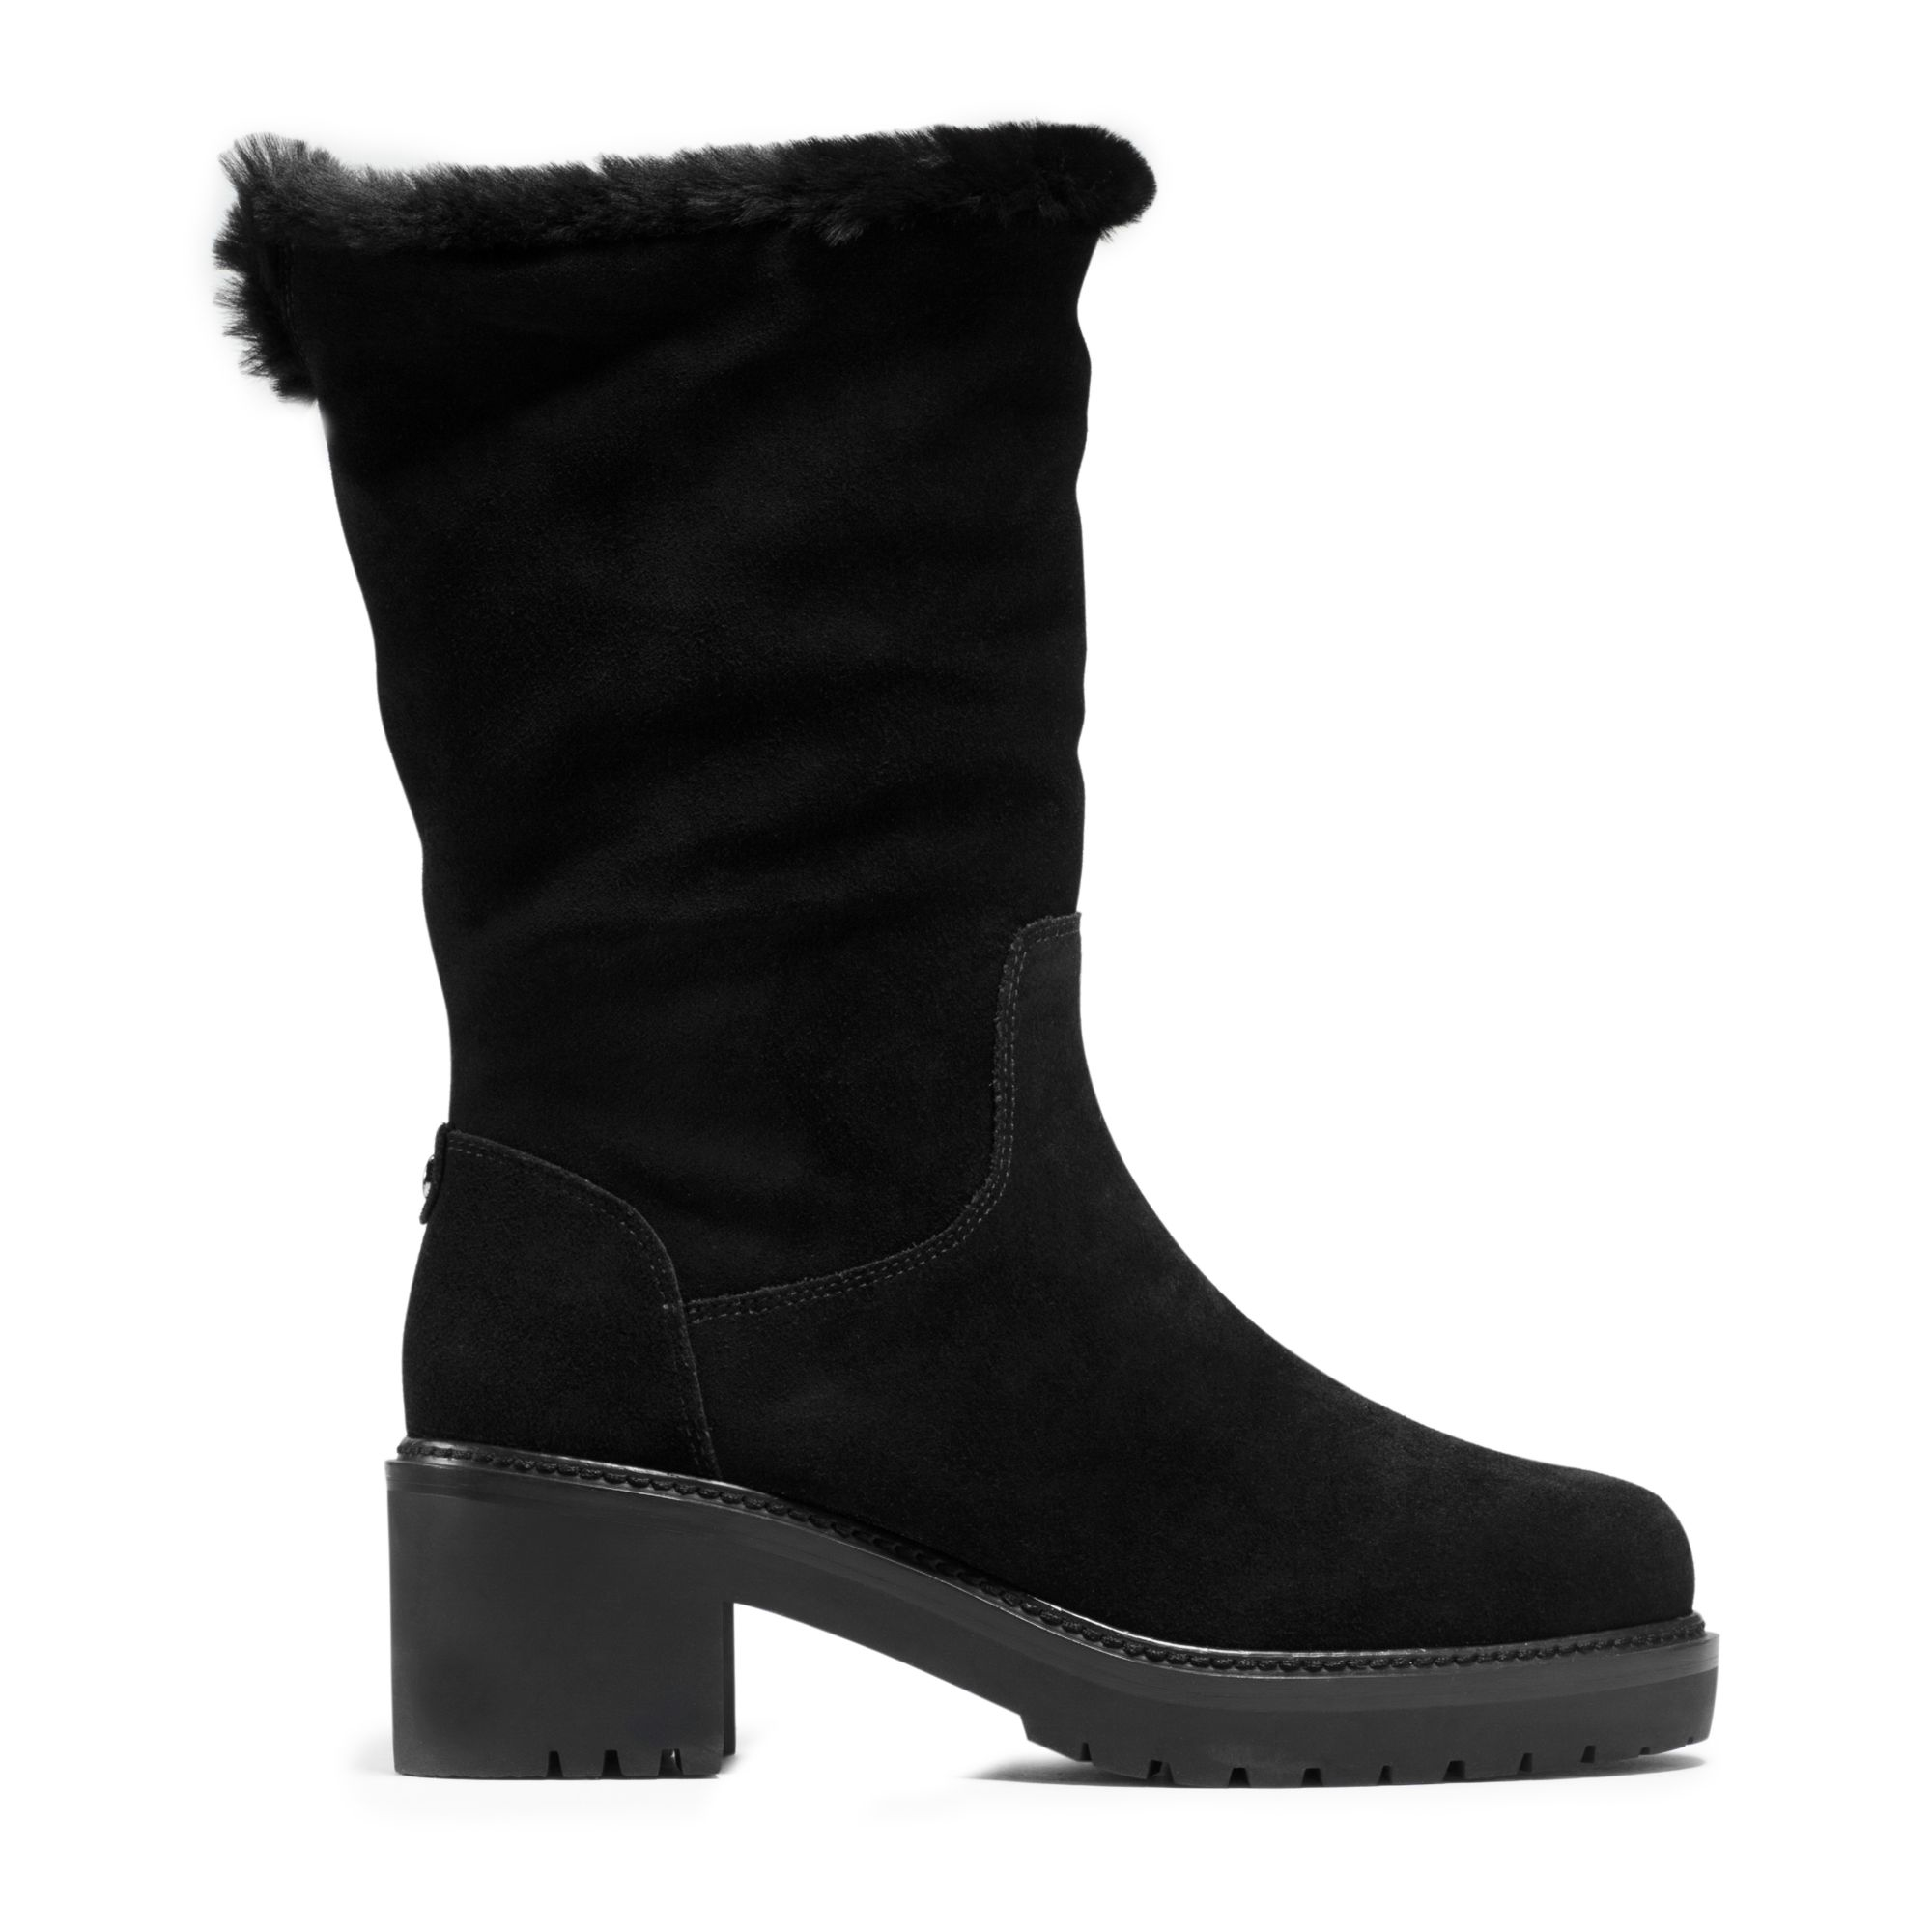 michael kors whitaker shearling lined suede boot in black